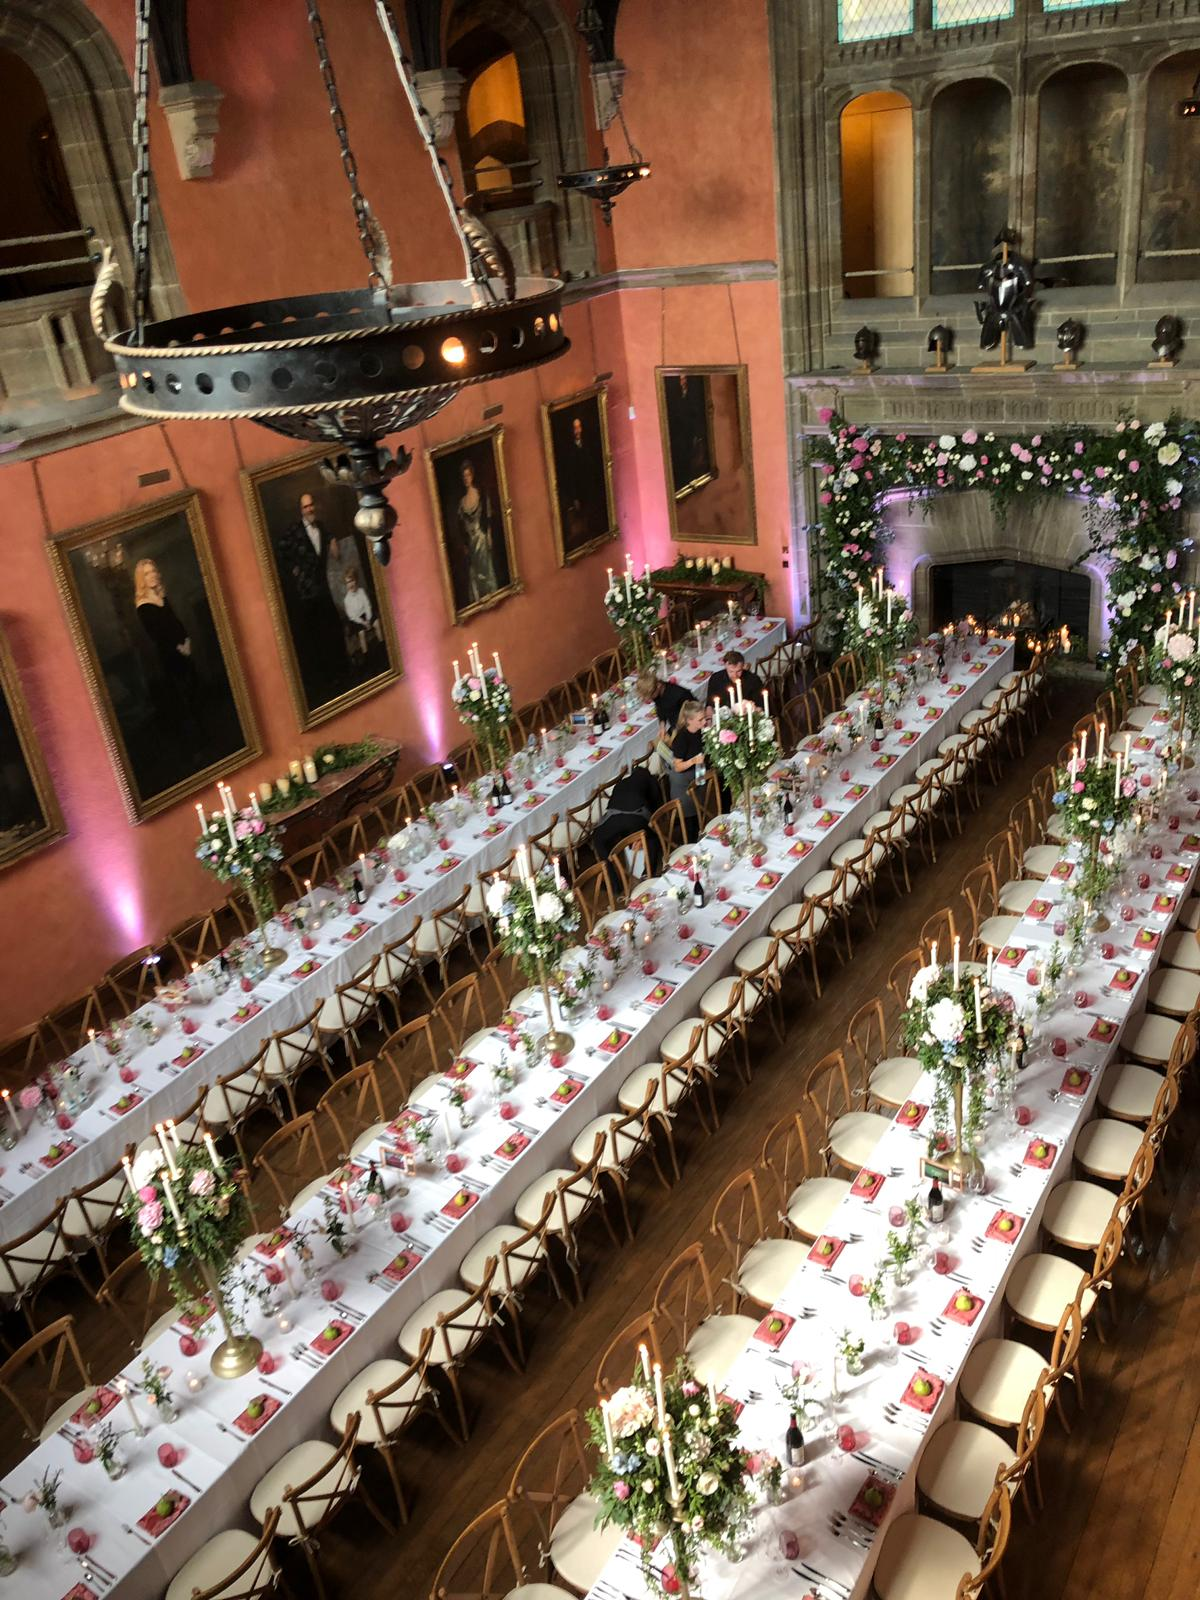 Buck Hall Banqueting tables for 150